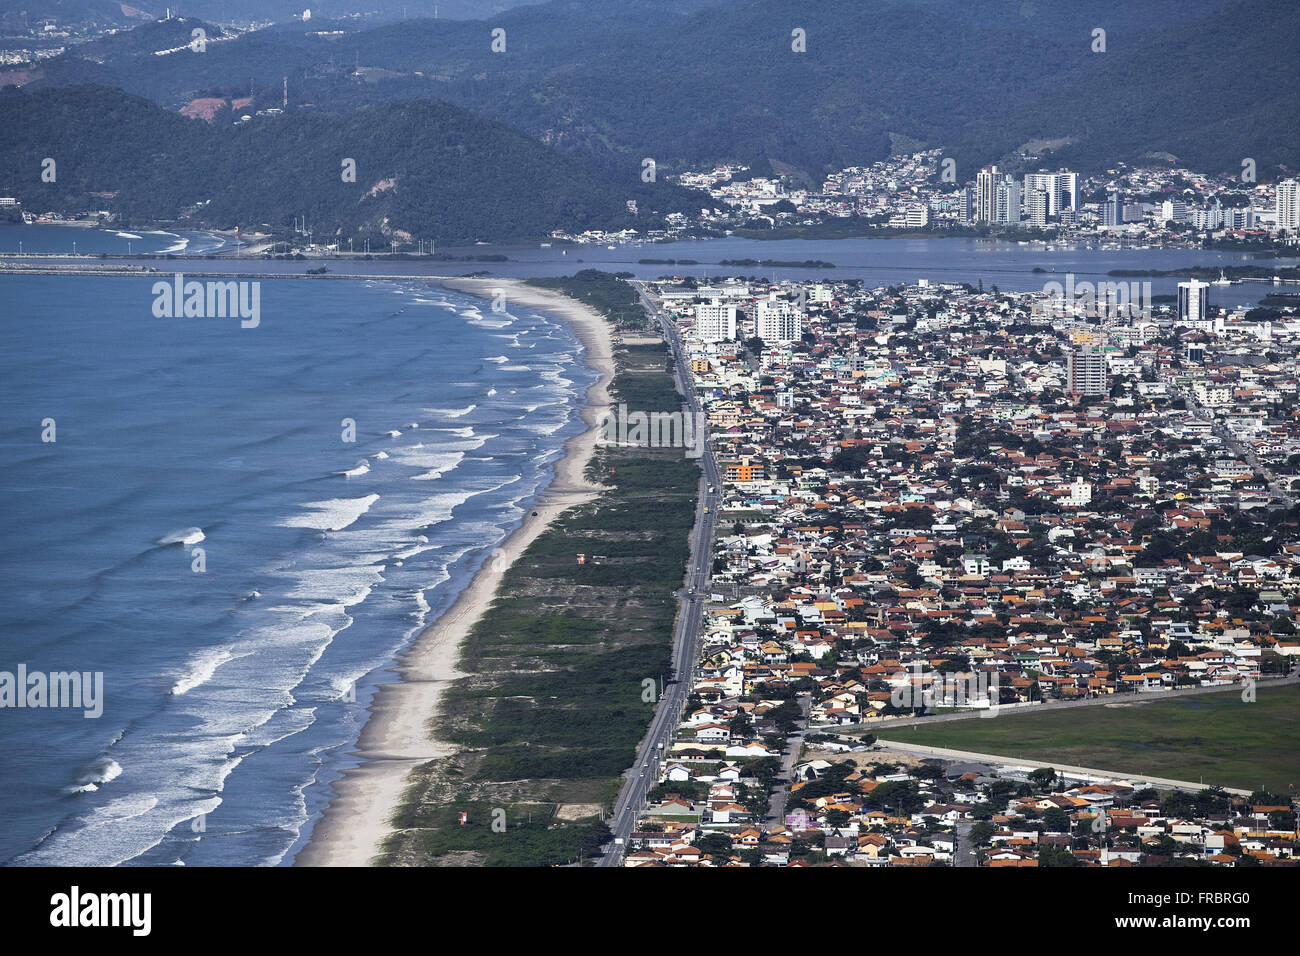 Aerial view of the seafront town with the mouth of the Itajai-Acu River in the background - Vale do Itajai - Stock Image